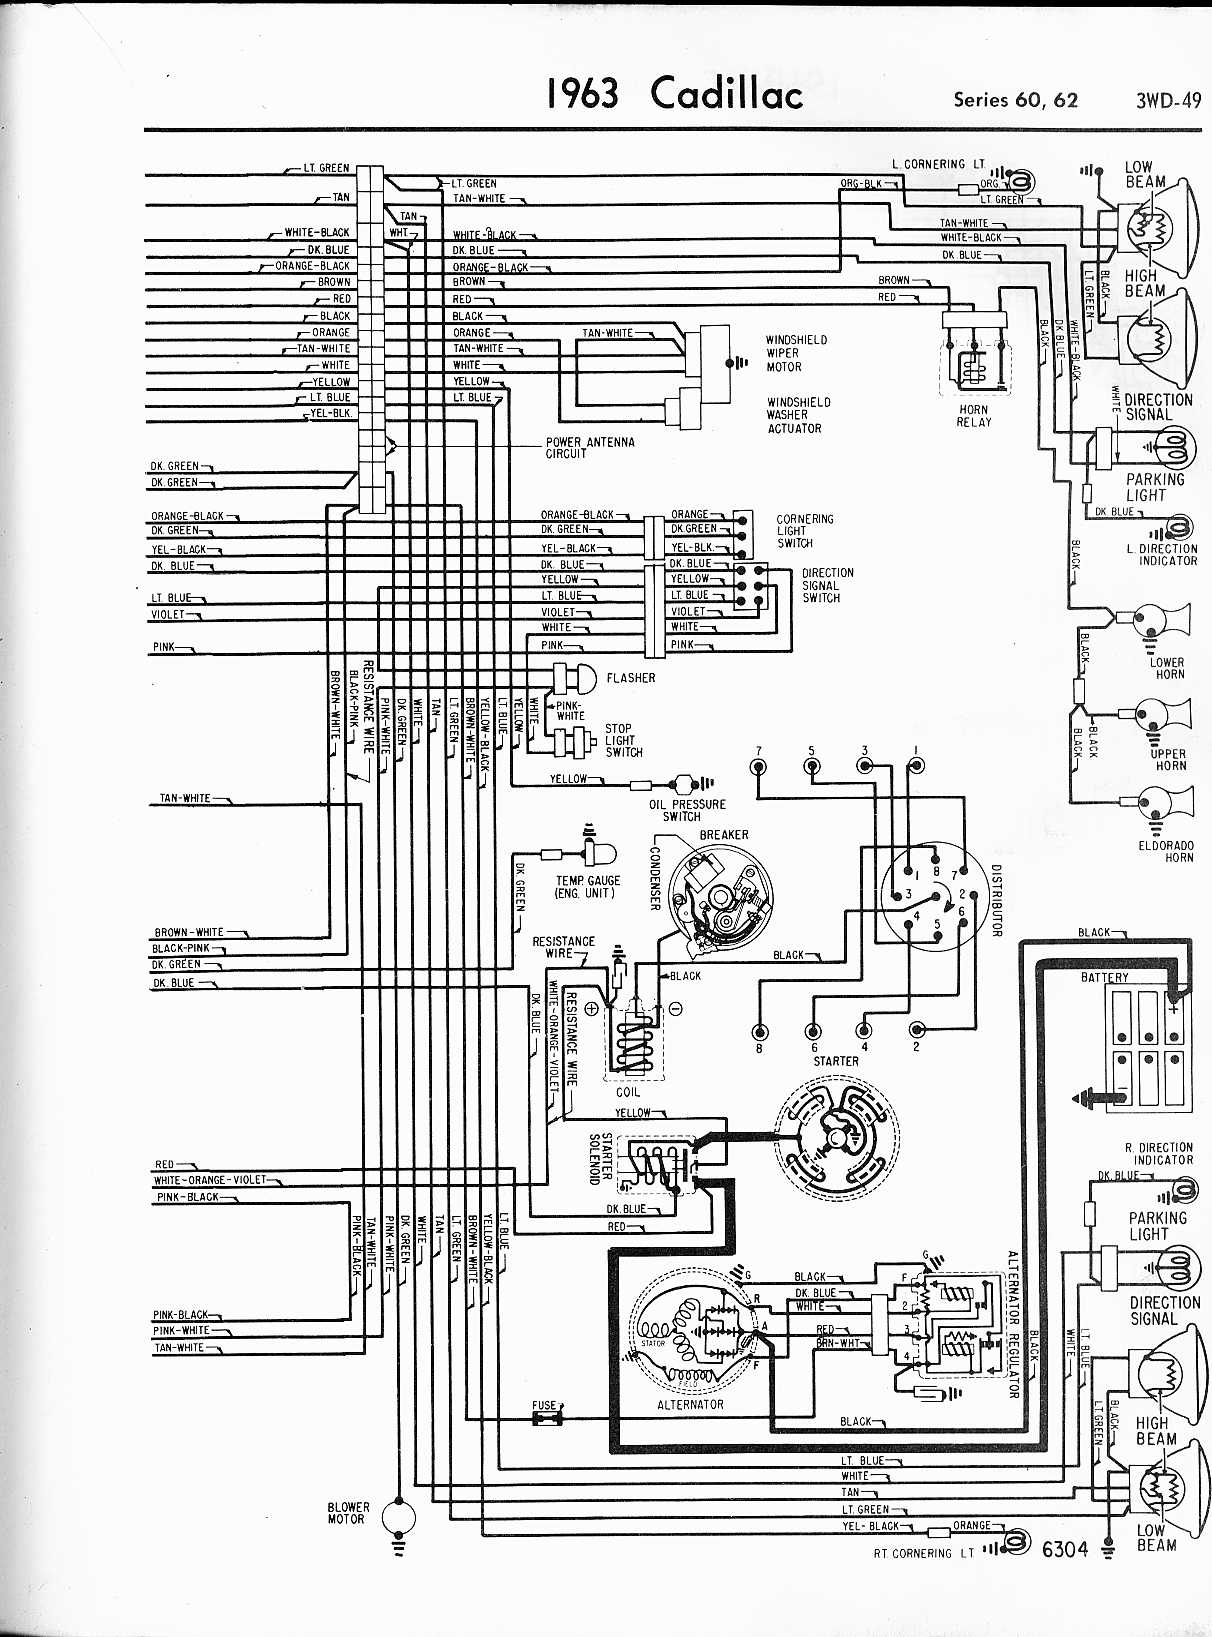 1963 cadillac coupe deville wiring diagram